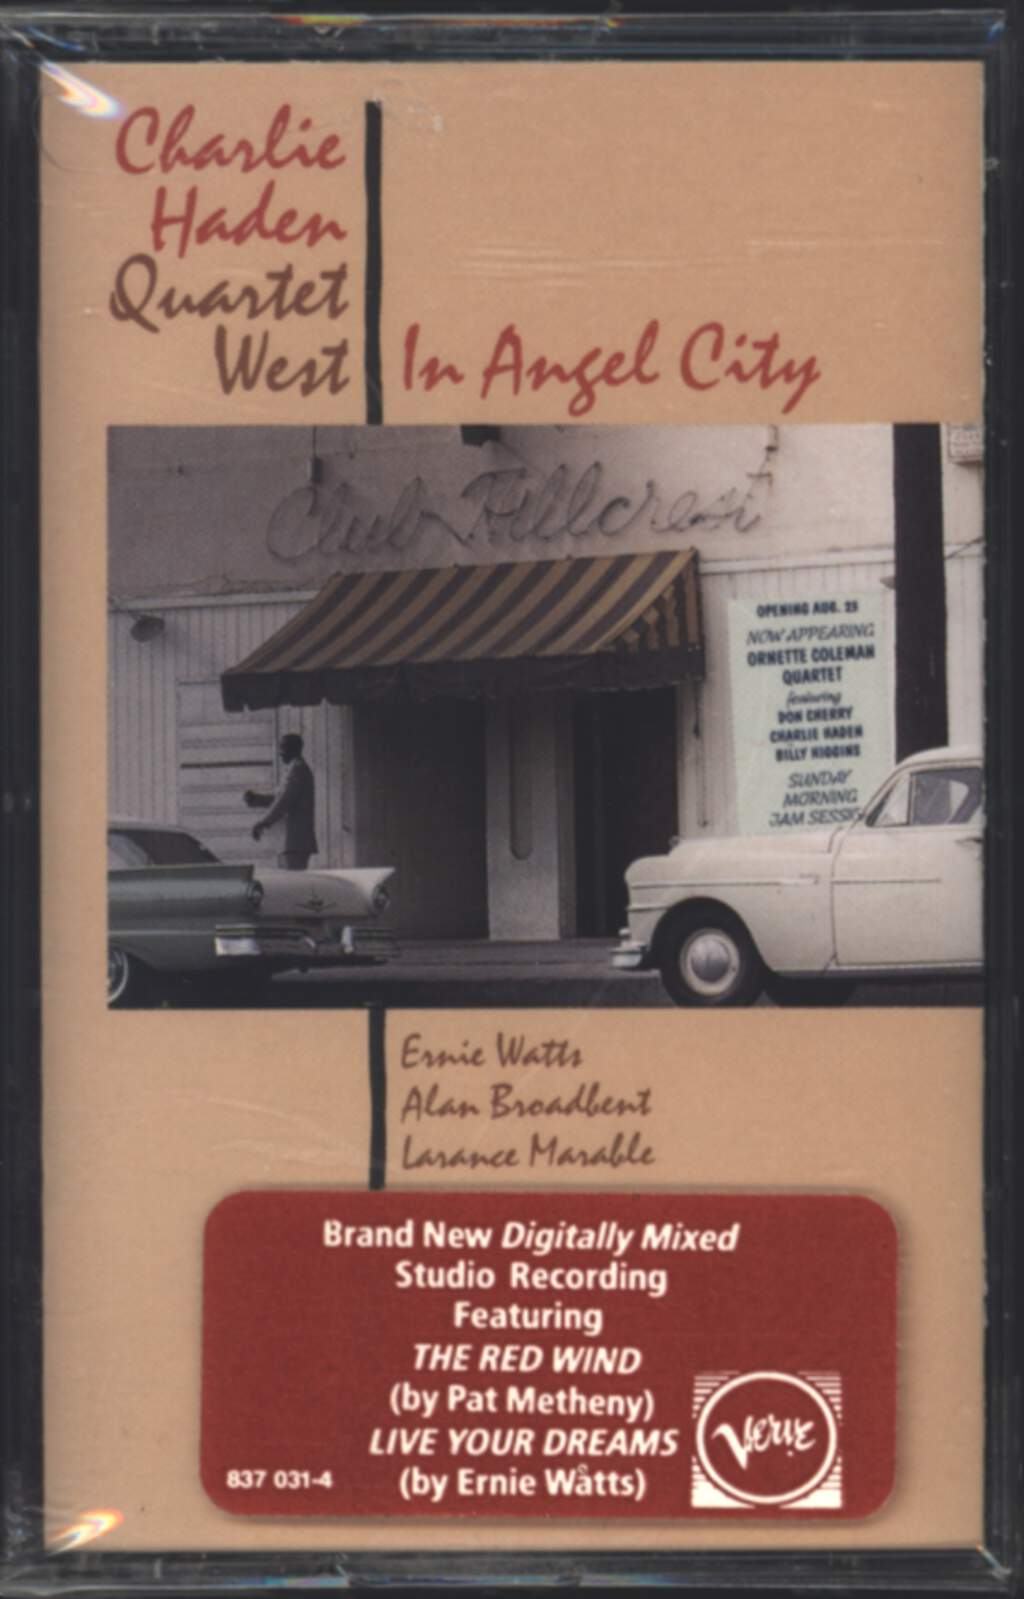 Charlie Haden Quartet West: In Angel City, Compact Cassette